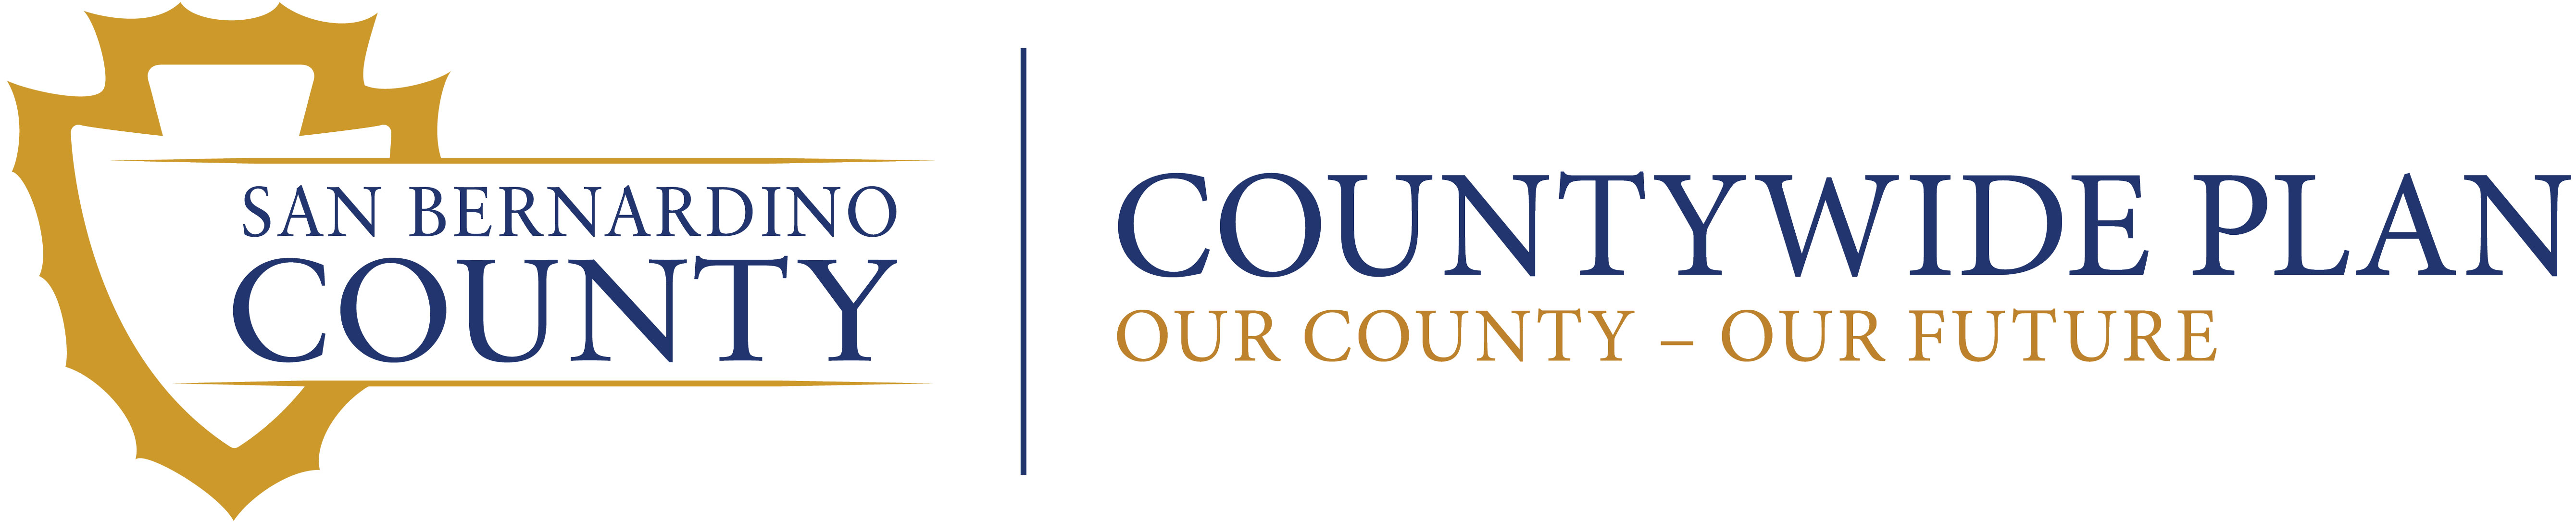 Countywide-Plan-w-Tagline2